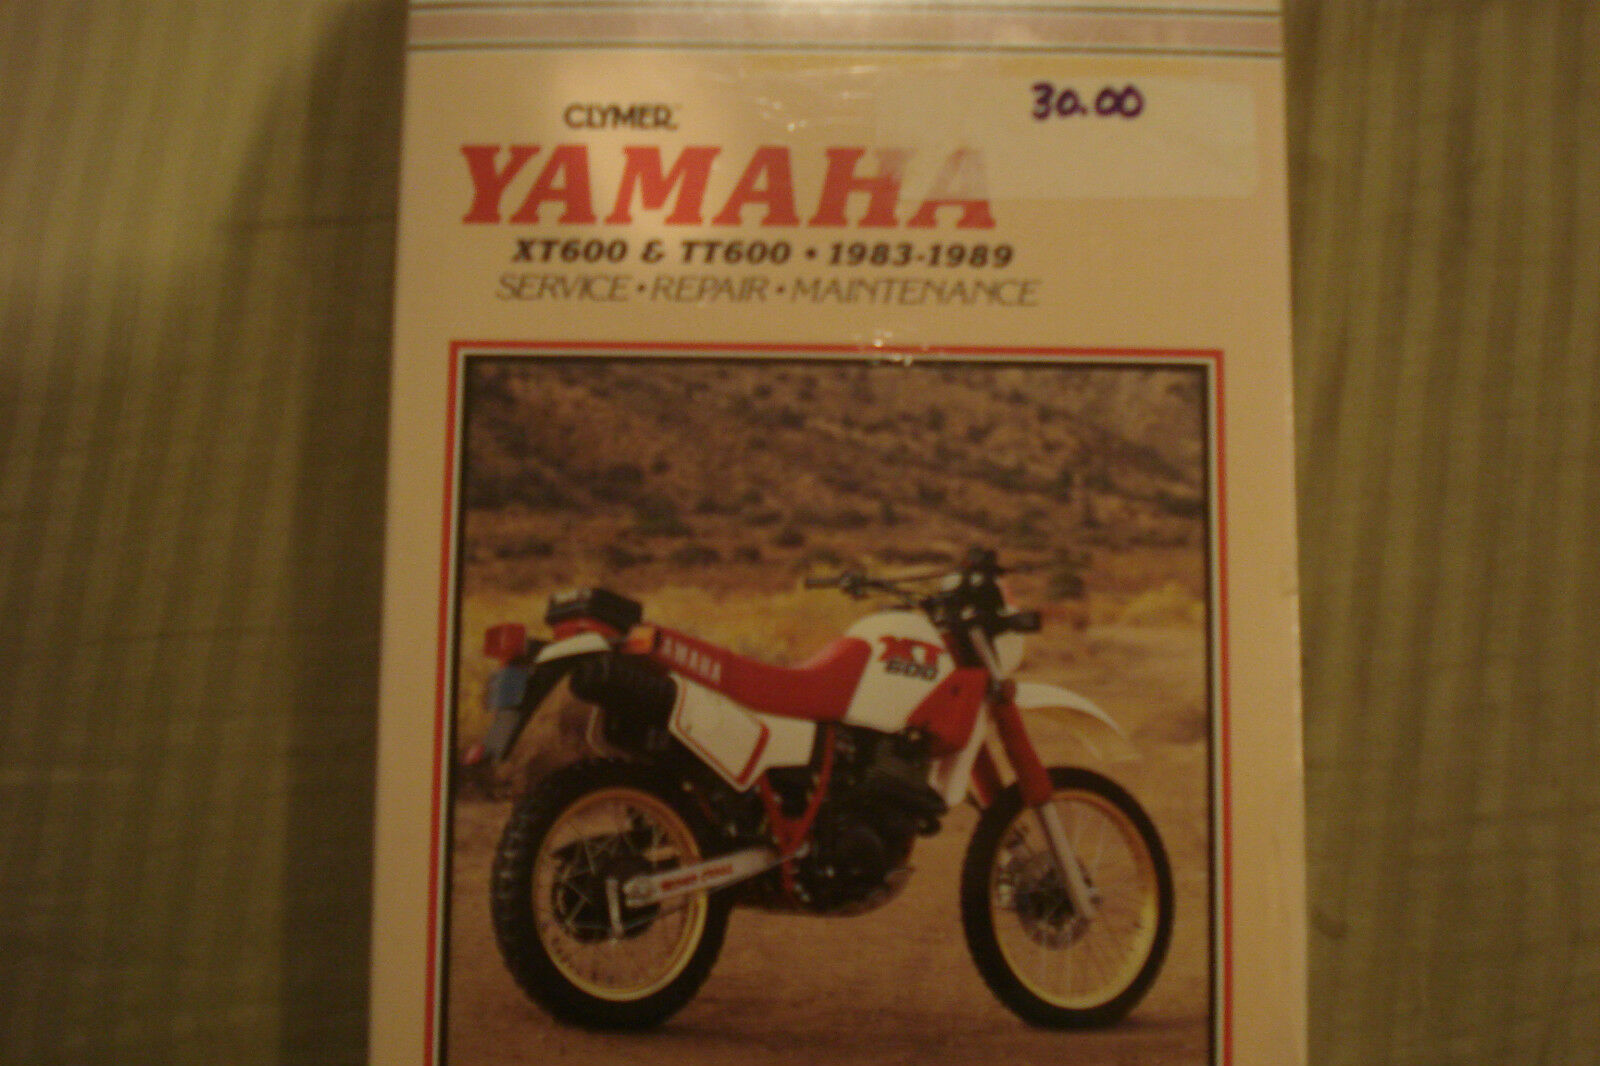 Clymer Yamaha XT600 & TT600 1983-1989 Service Repair Maintenance Manual  M416 1 of 1Only 1 available ...